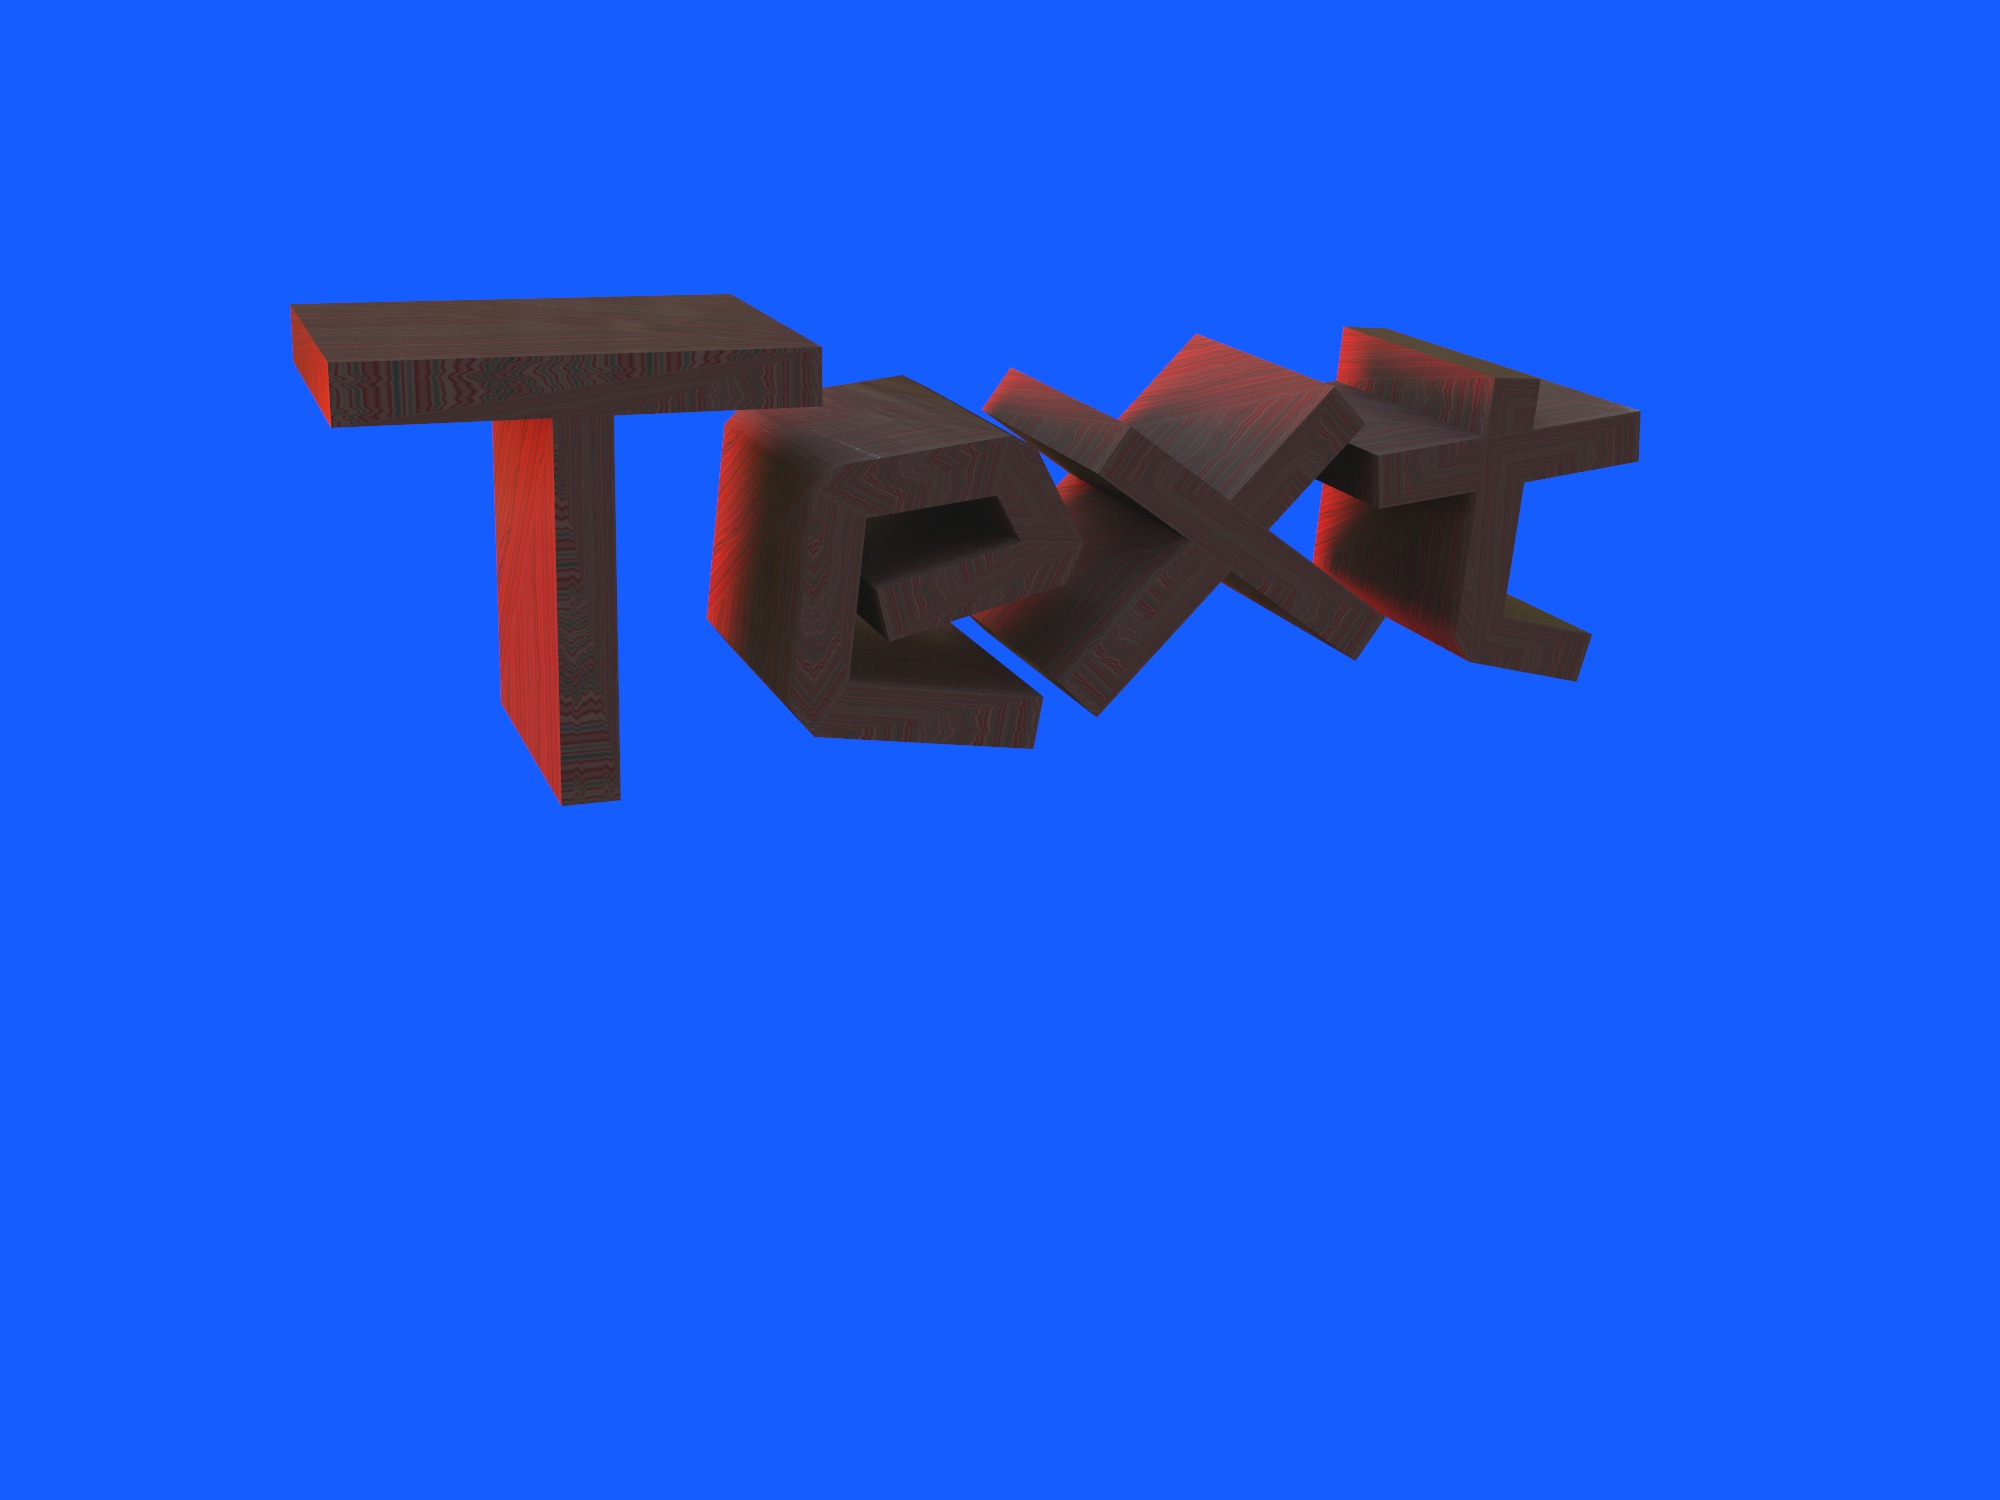 Text (copy) - 3D design by efunkhouse119 on Dec 15, 2018